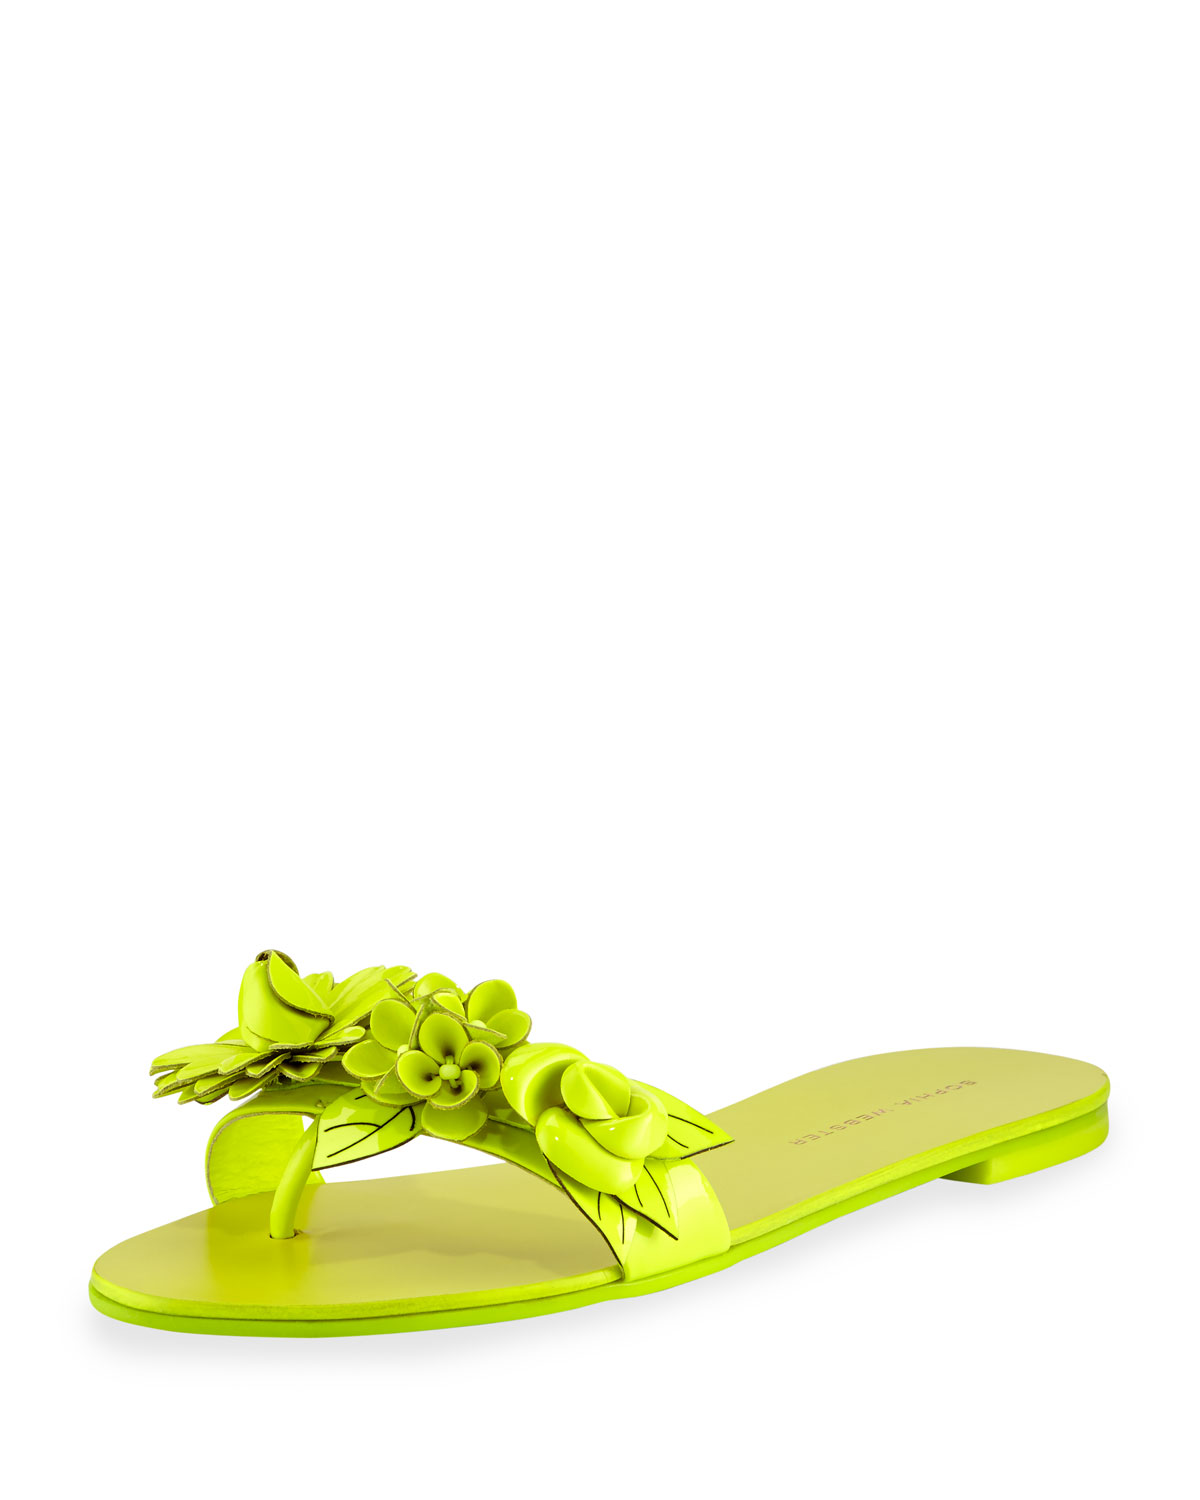 Lilico Floral Slide Sandal, Fluorescent Yellow, Size: 35.0B/5.0B, Fluoro Yellow - Sophia Webster